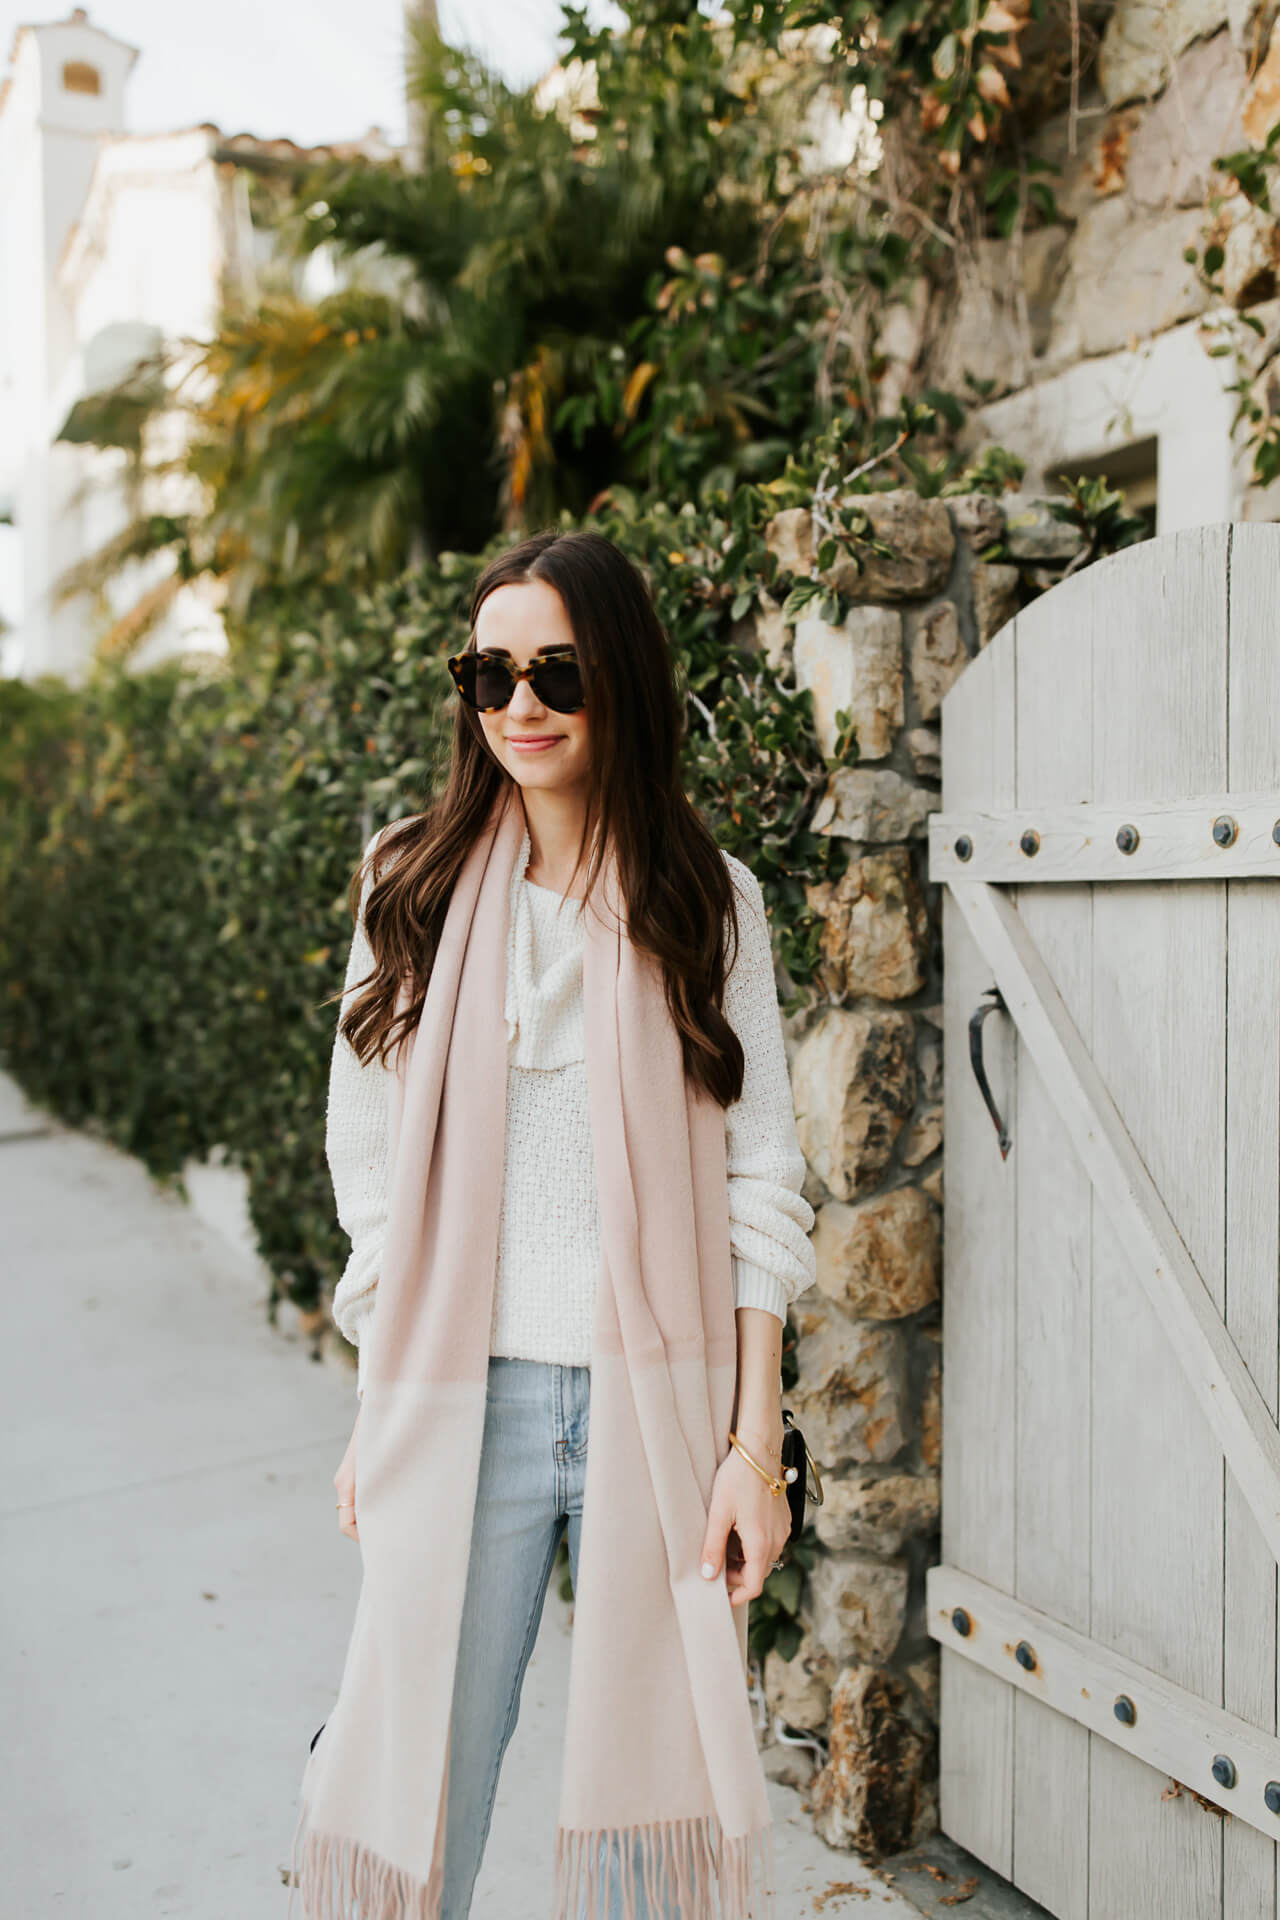 neutral outfit inspiration with cozy free people turtleneck and light wash mom jeans - M Loves M @marmar